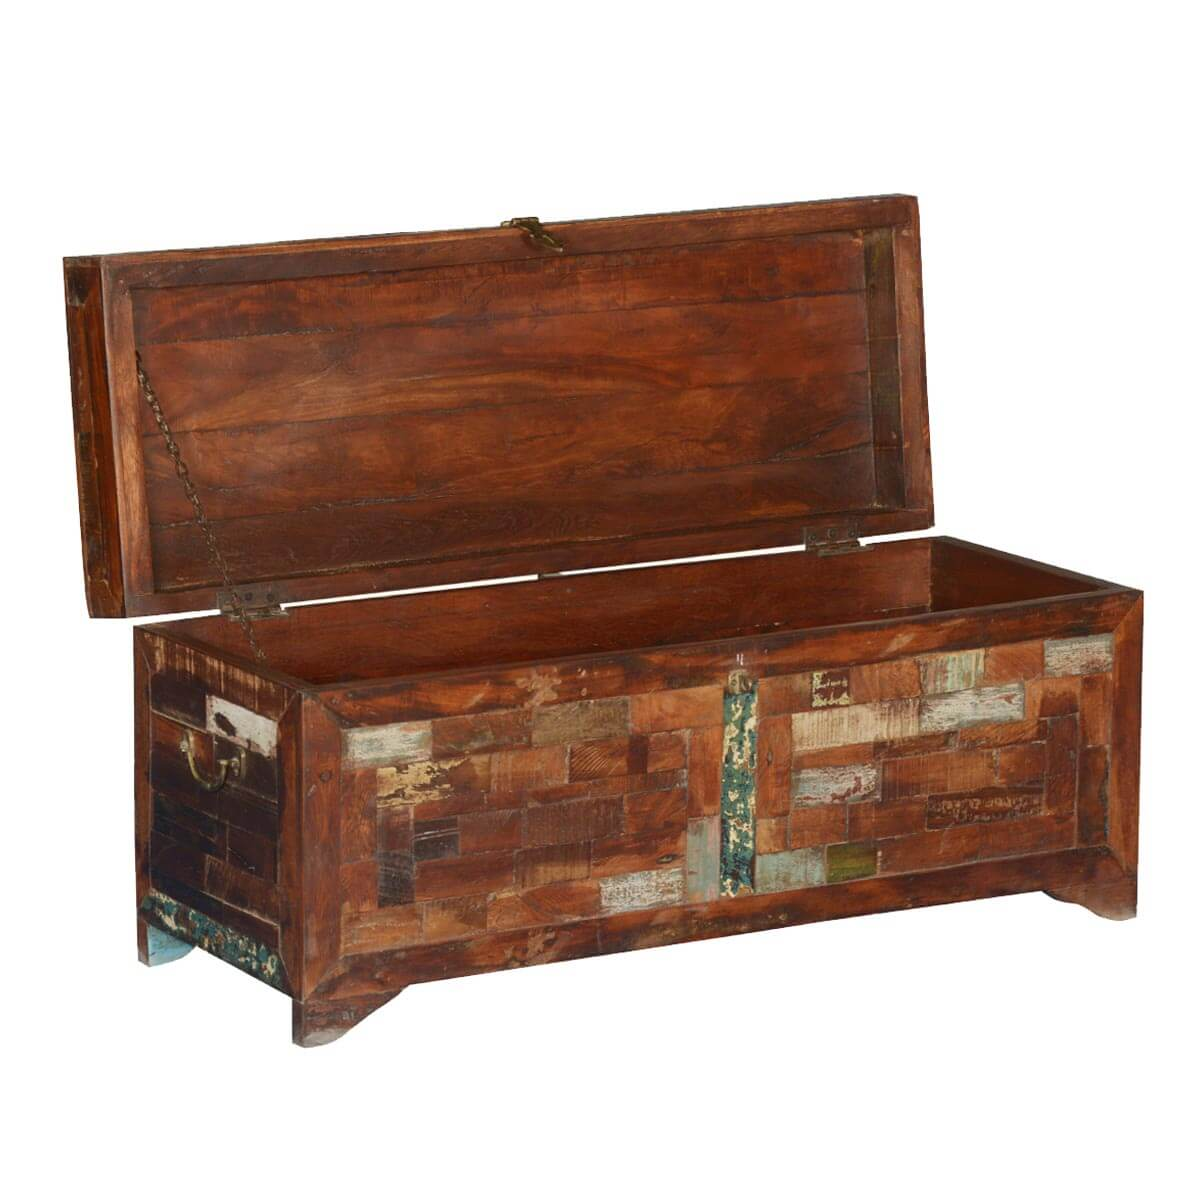 Rustic Brick Reclaimed Wood Standing Coffee Table Chest